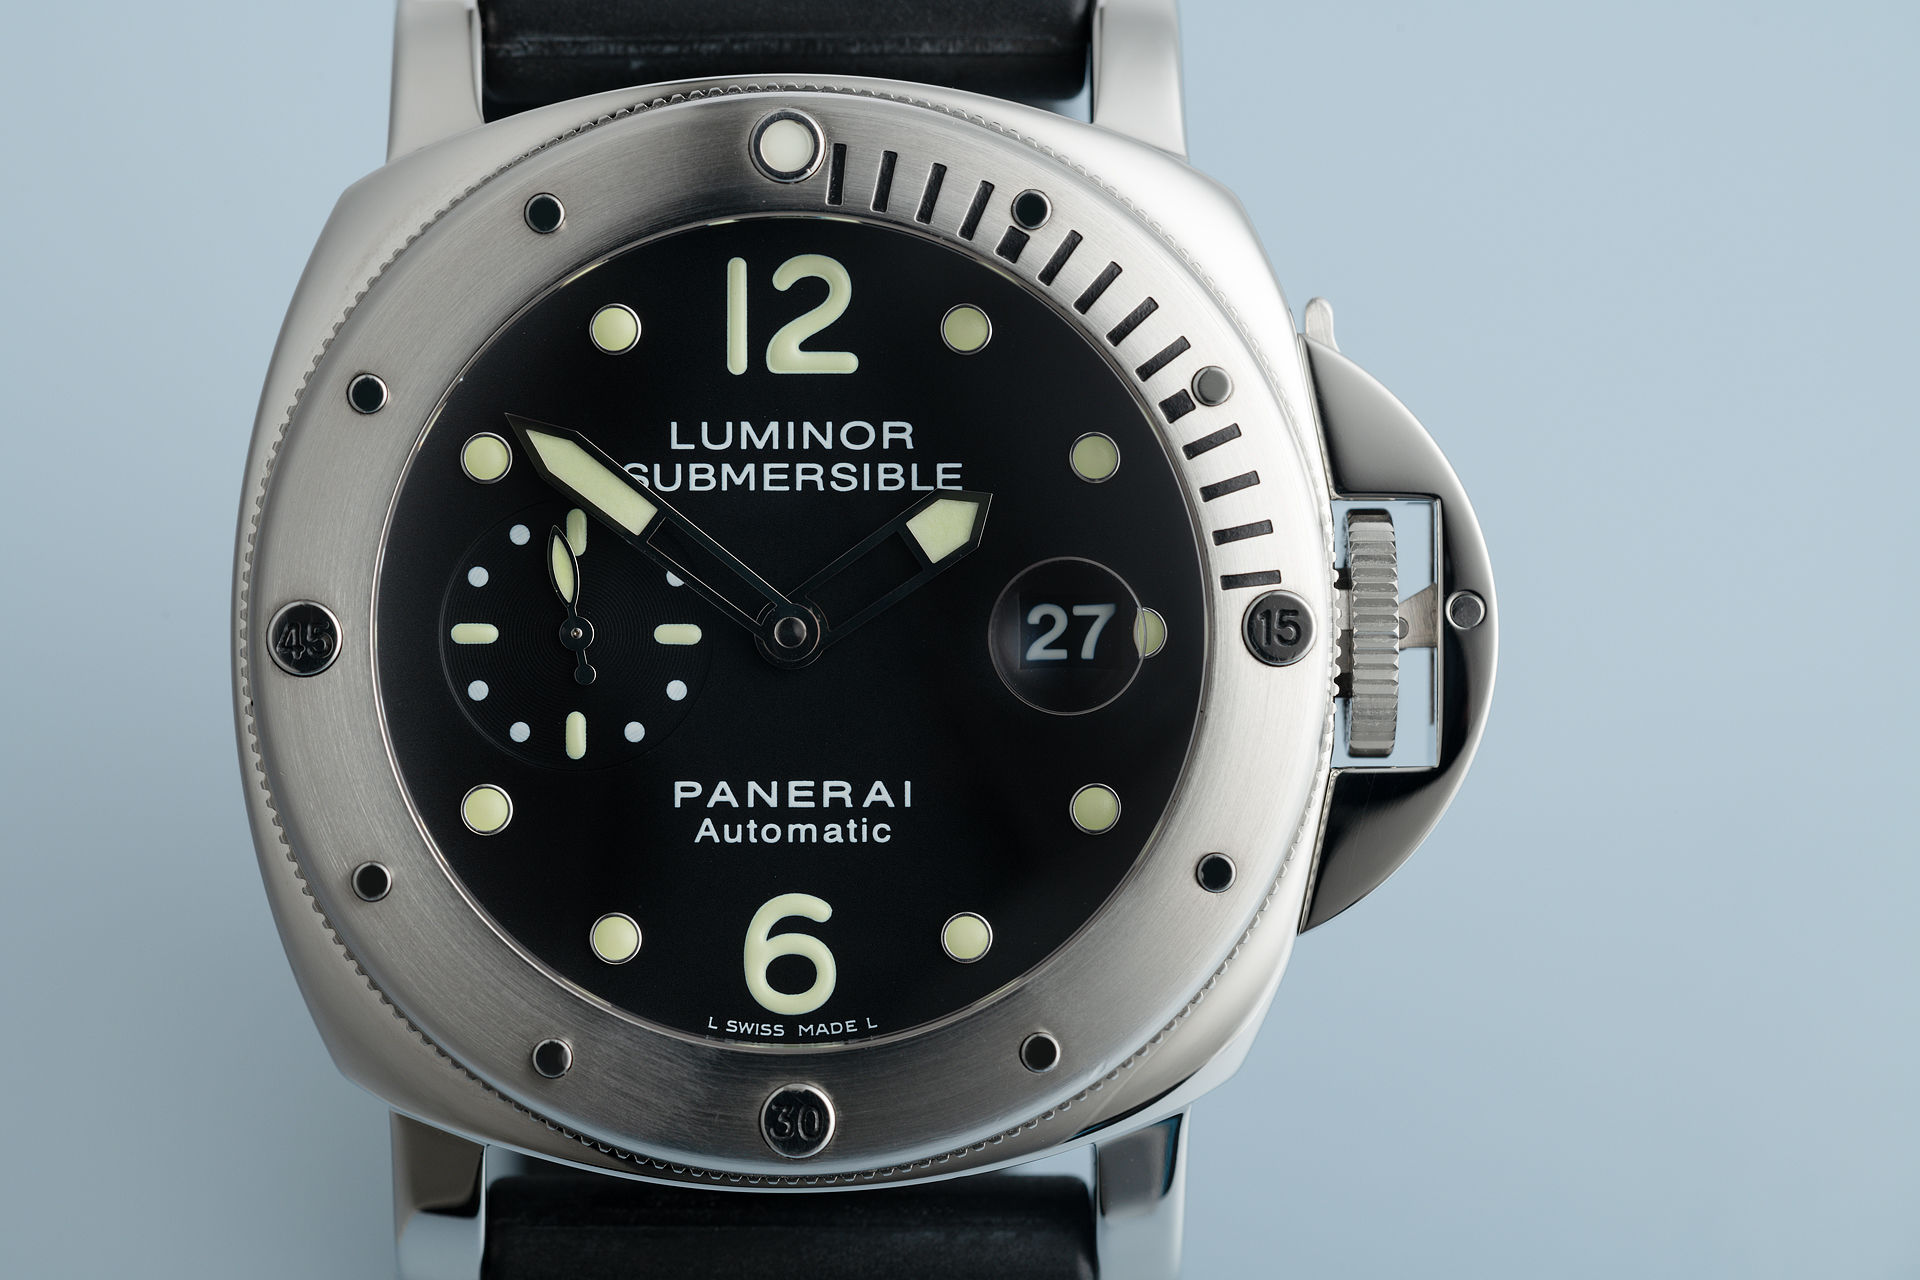 - 44mm Divers Watch | ref PAM 024 | Panerai Luminor Submersible